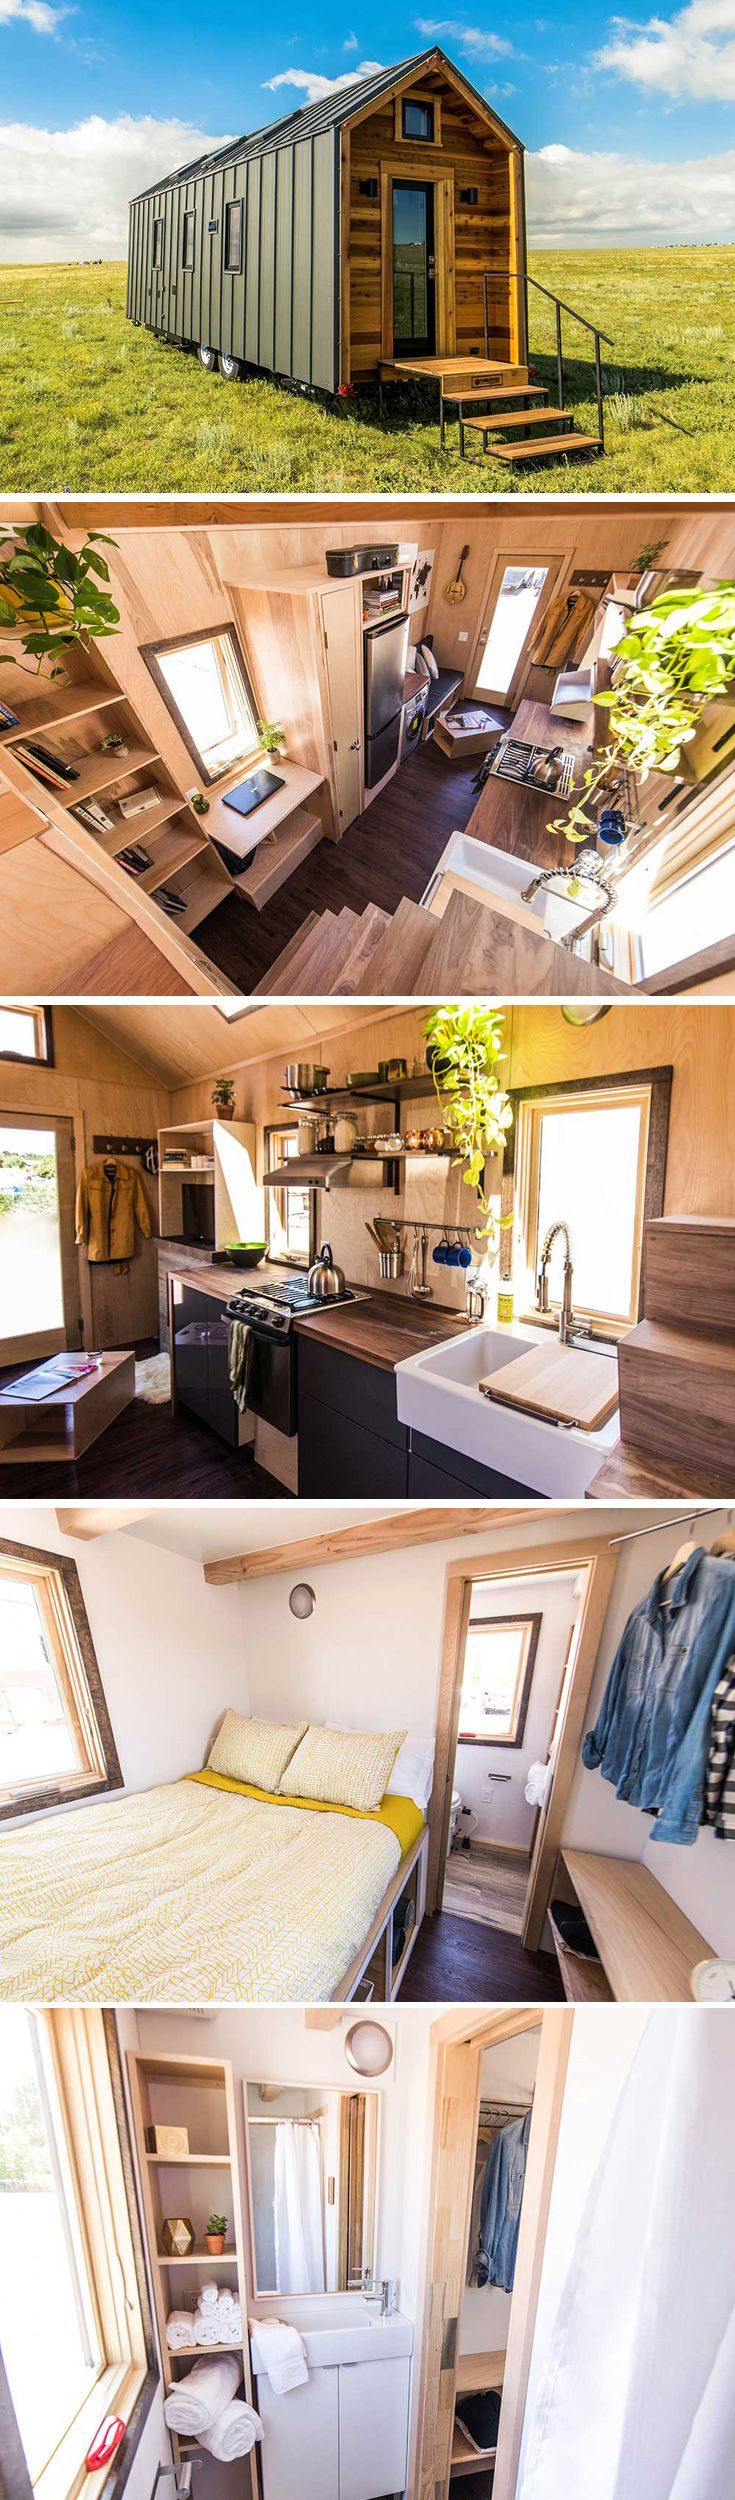 best ideas for the house images on pinterest